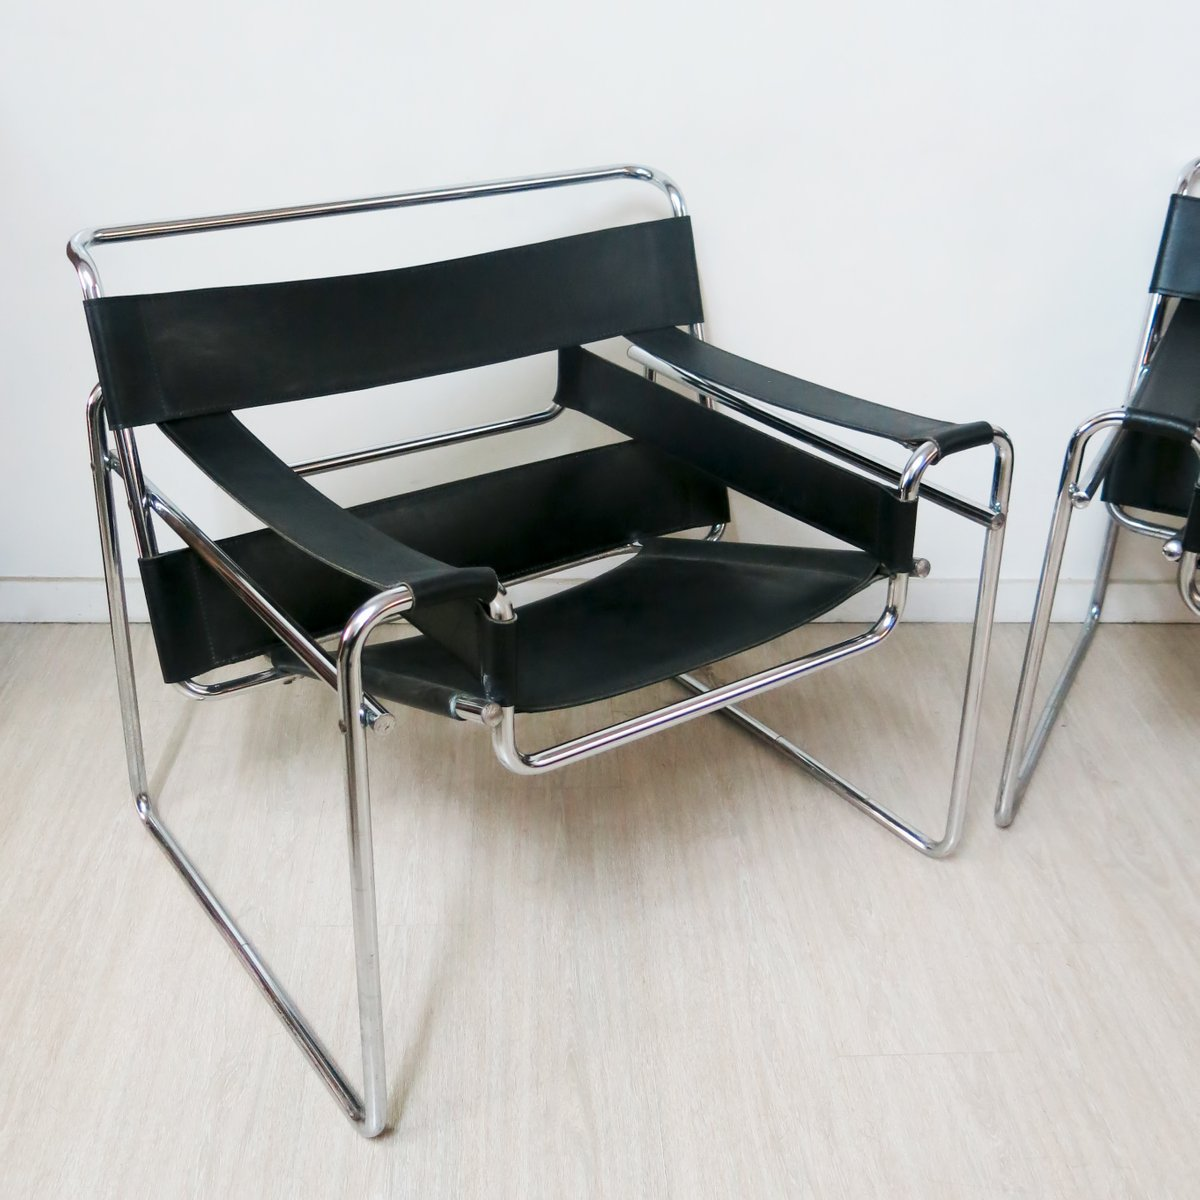 wassily chair by marcel breuer 1980s for sale at pamono. Black Bedroom Furniture Sets. Home Design Ideas